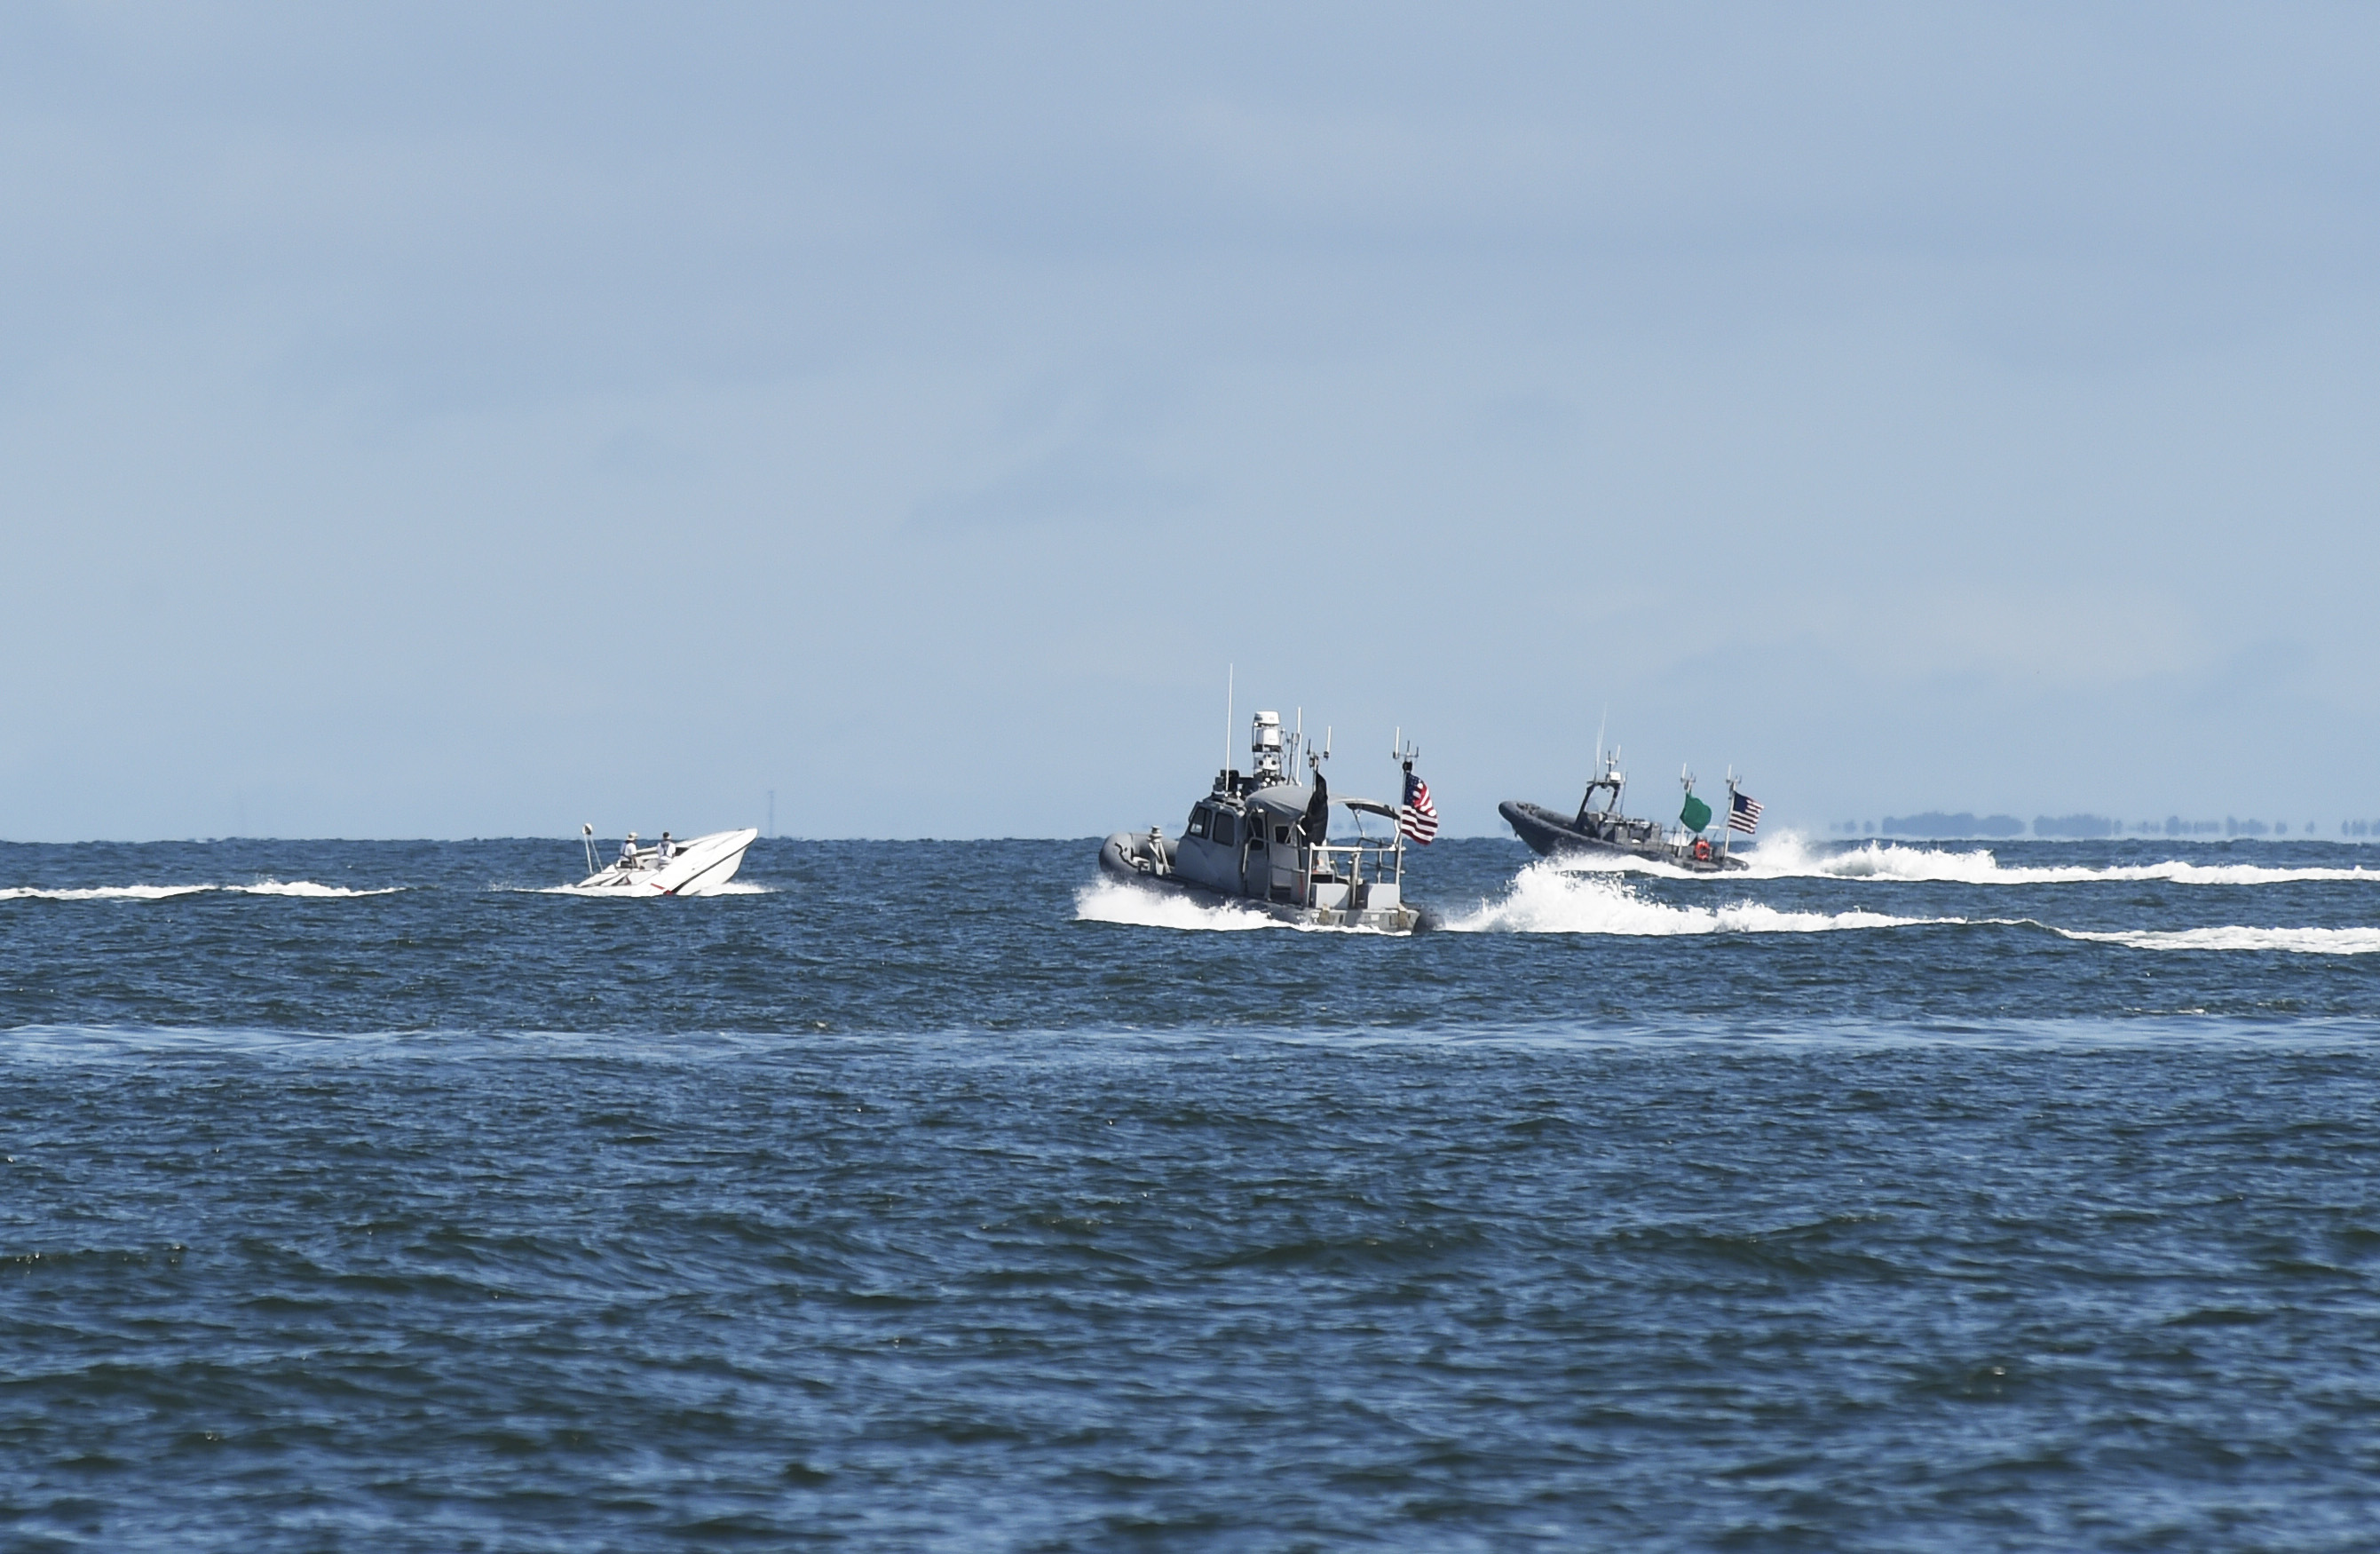 Unmanned rigid-hull inflatable boats operating autonomously close in on a contact of interest during an Office of Naval Research (ONR)-sponsored demonstration of swarmboat technology held at Joint Expeditionary Base Little Creek-Fort Story on Sept. 30, 2016. US Navy photo.